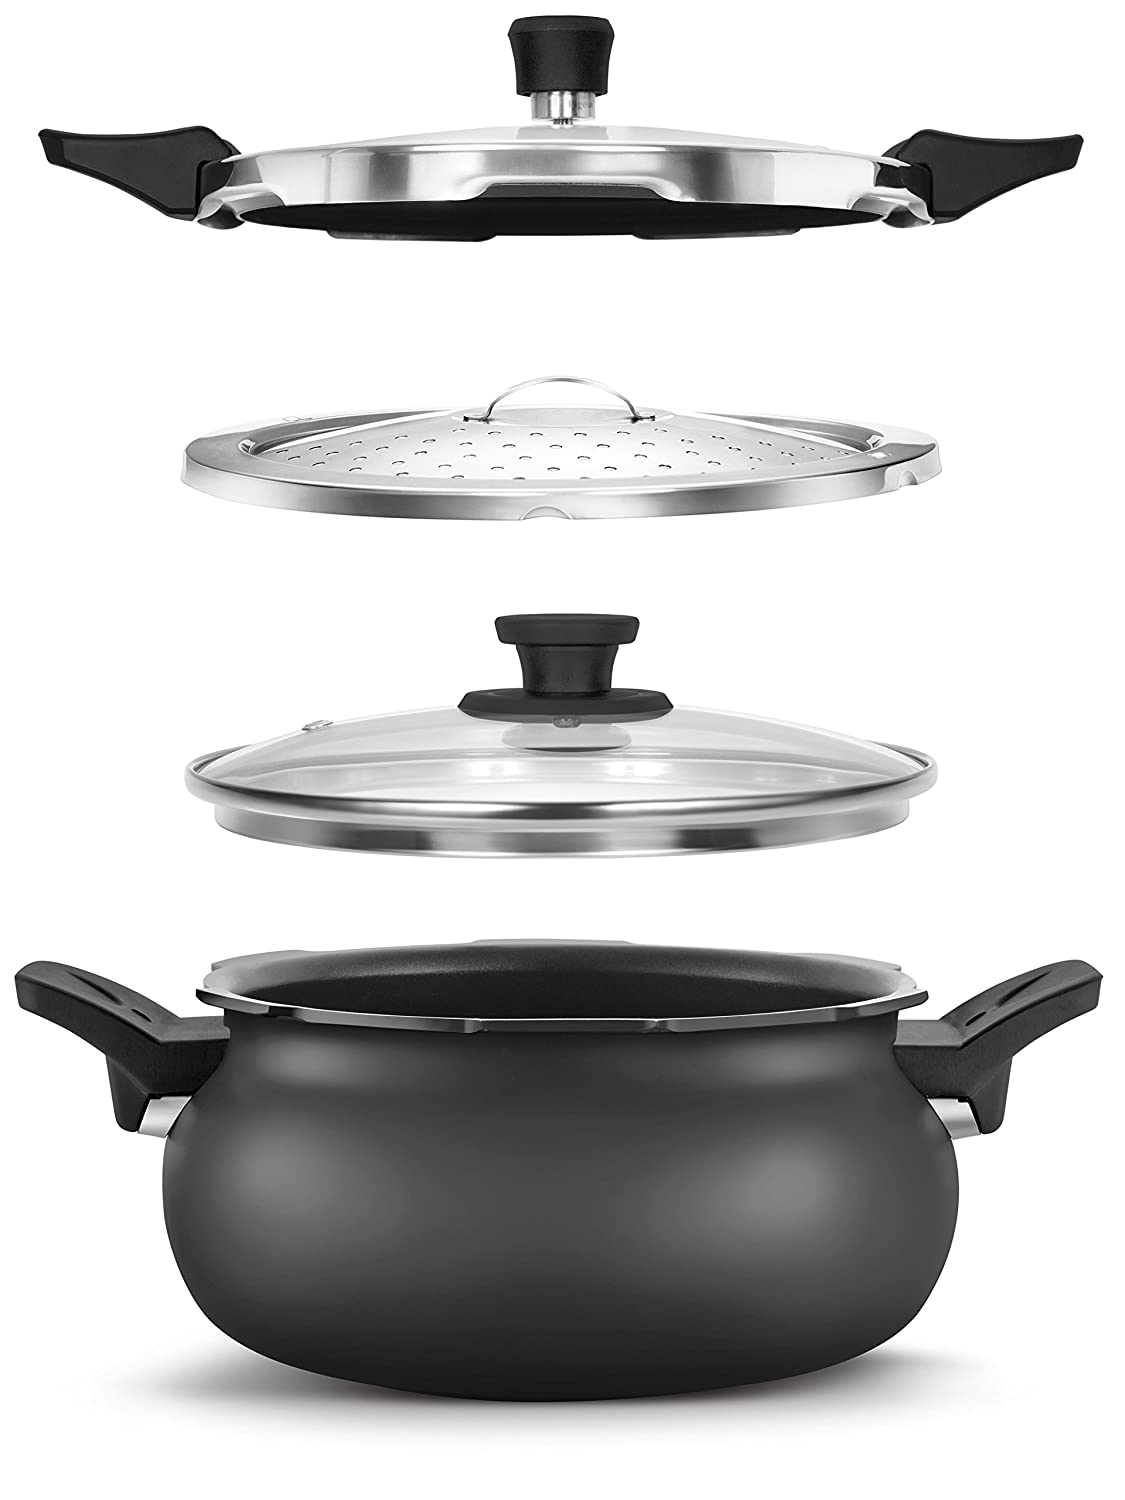 Pigeon 3 in 1 Hard Anodized Super Cooker 5 litres